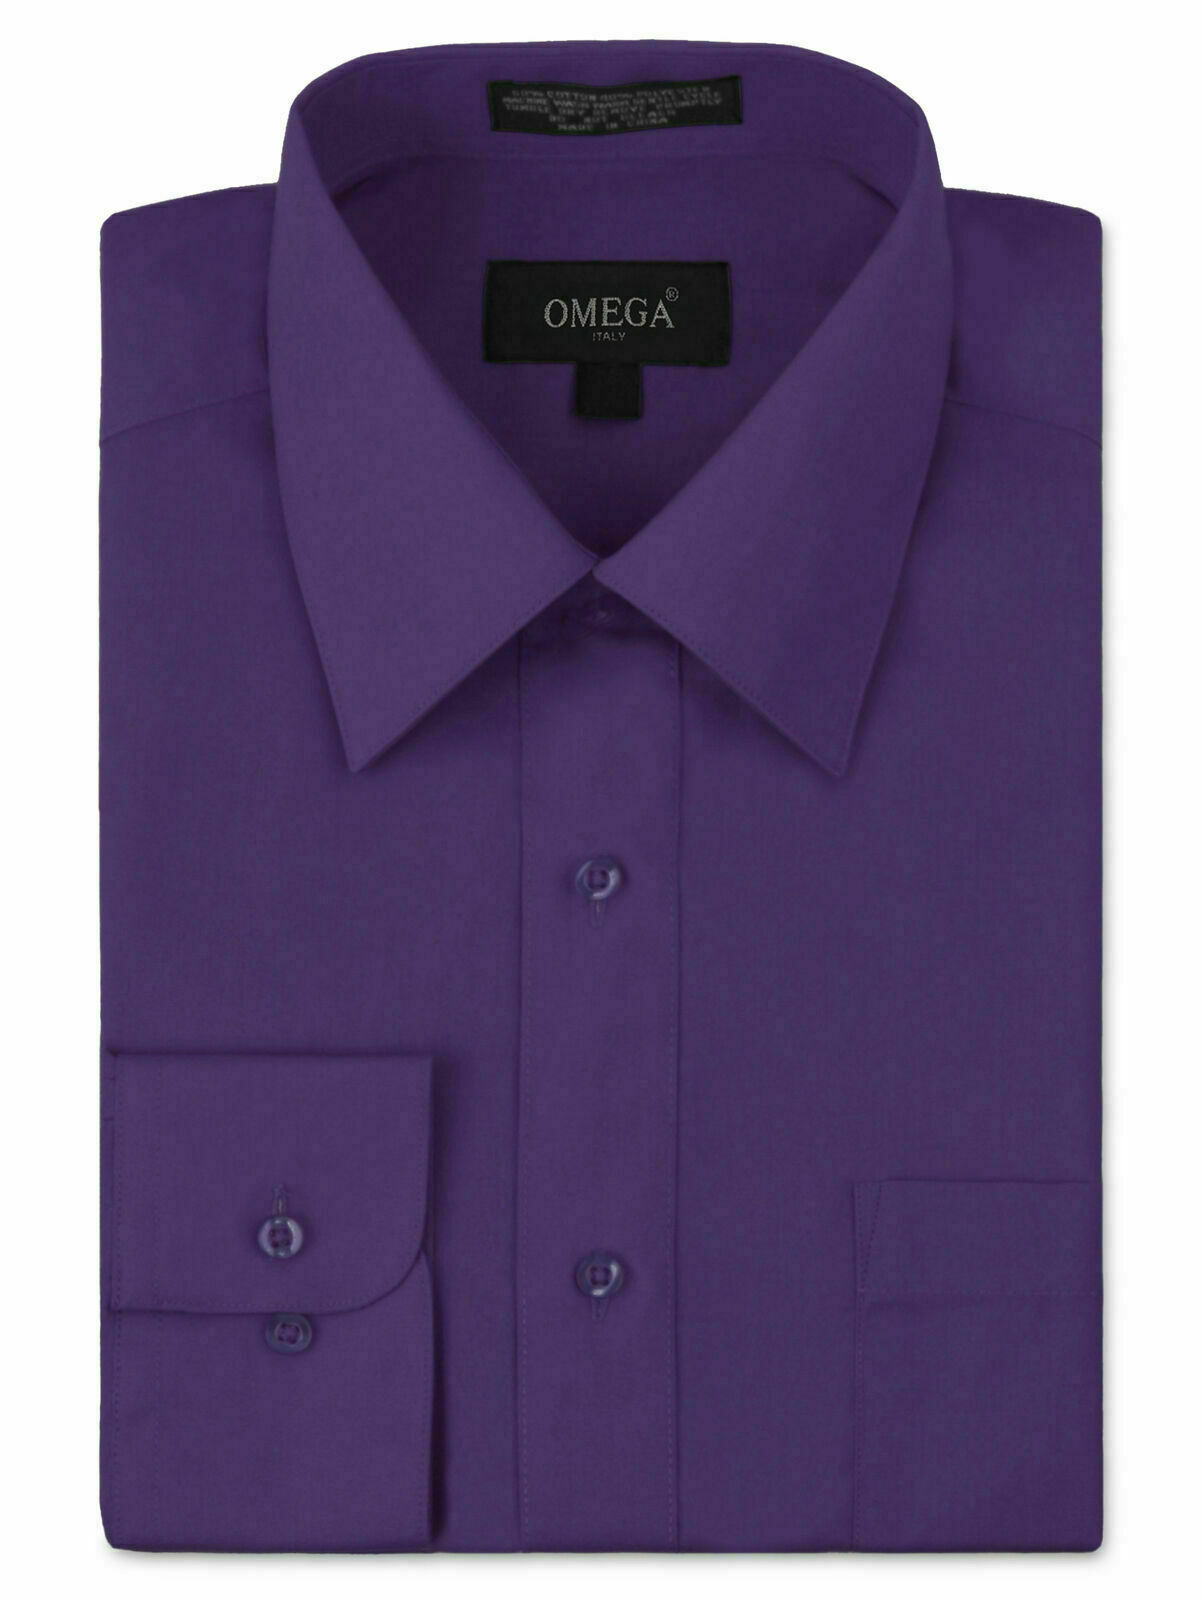 Omega Italy Men Purple Classic Fit Standard Cuff Solid Dress Shirt - 2XL